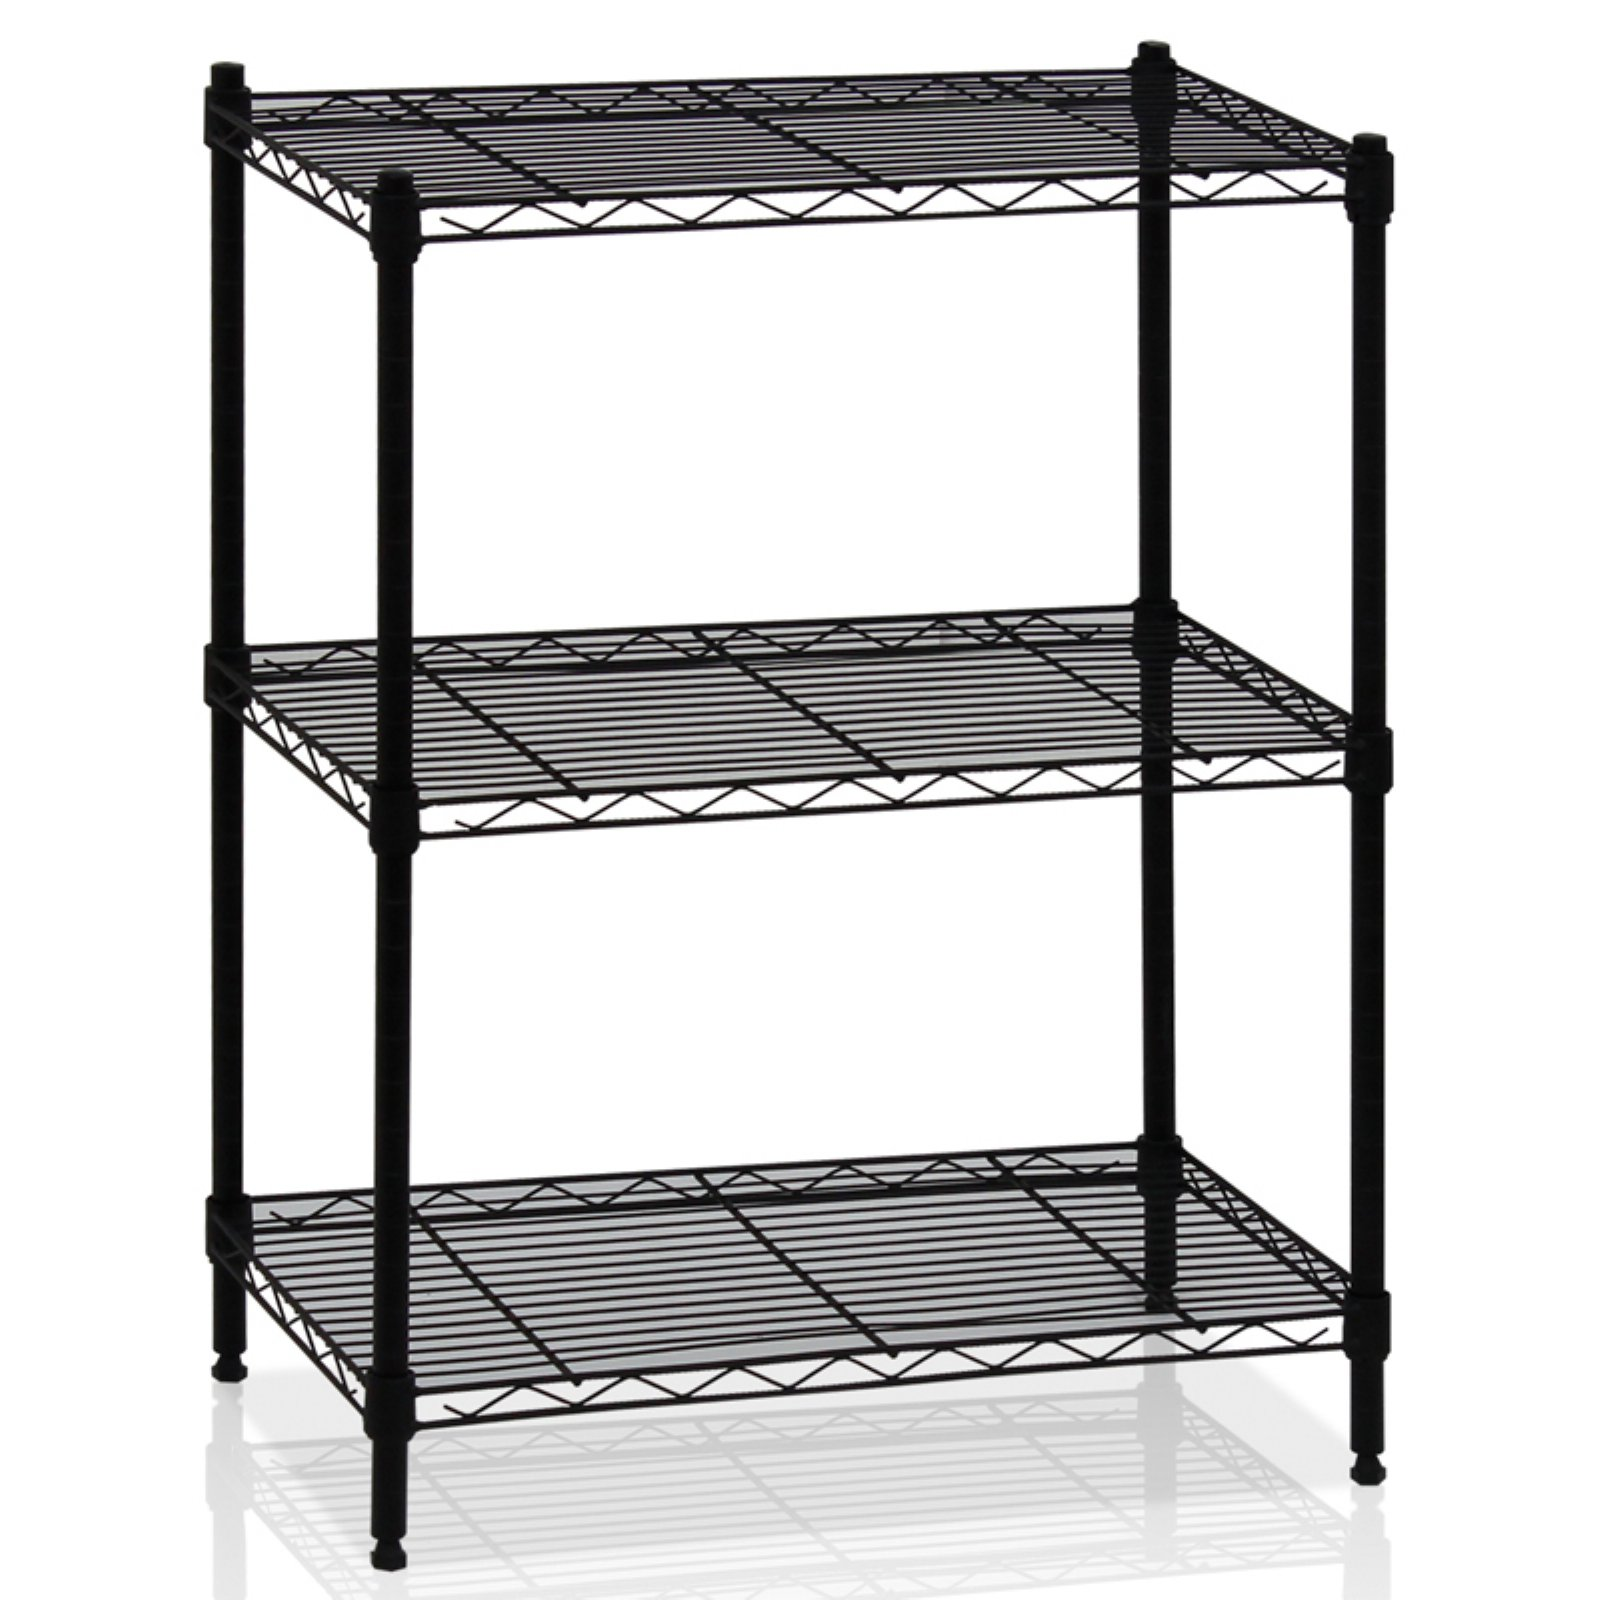 Furinno Wayar 3-Tier Heavy-Duty Wire Shelving, Multiple Colors